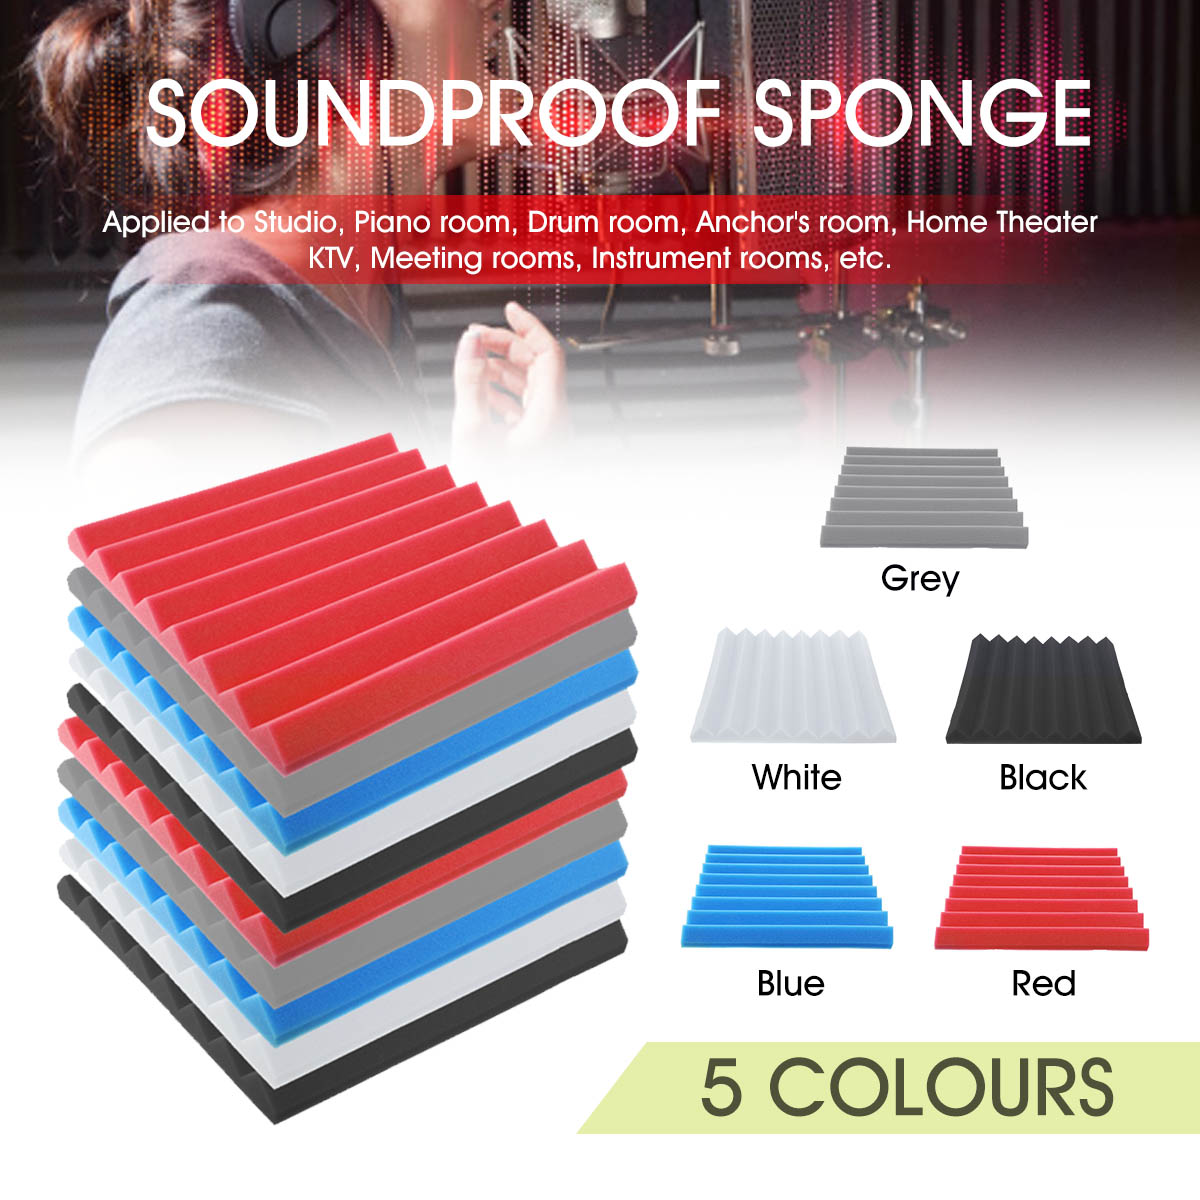 4Pcs 500x500x50mm Soundproofing Foam Acoustic Foam Sound Treatment Studio Room Absorption Tiles Polyurethane foam 5 Colors